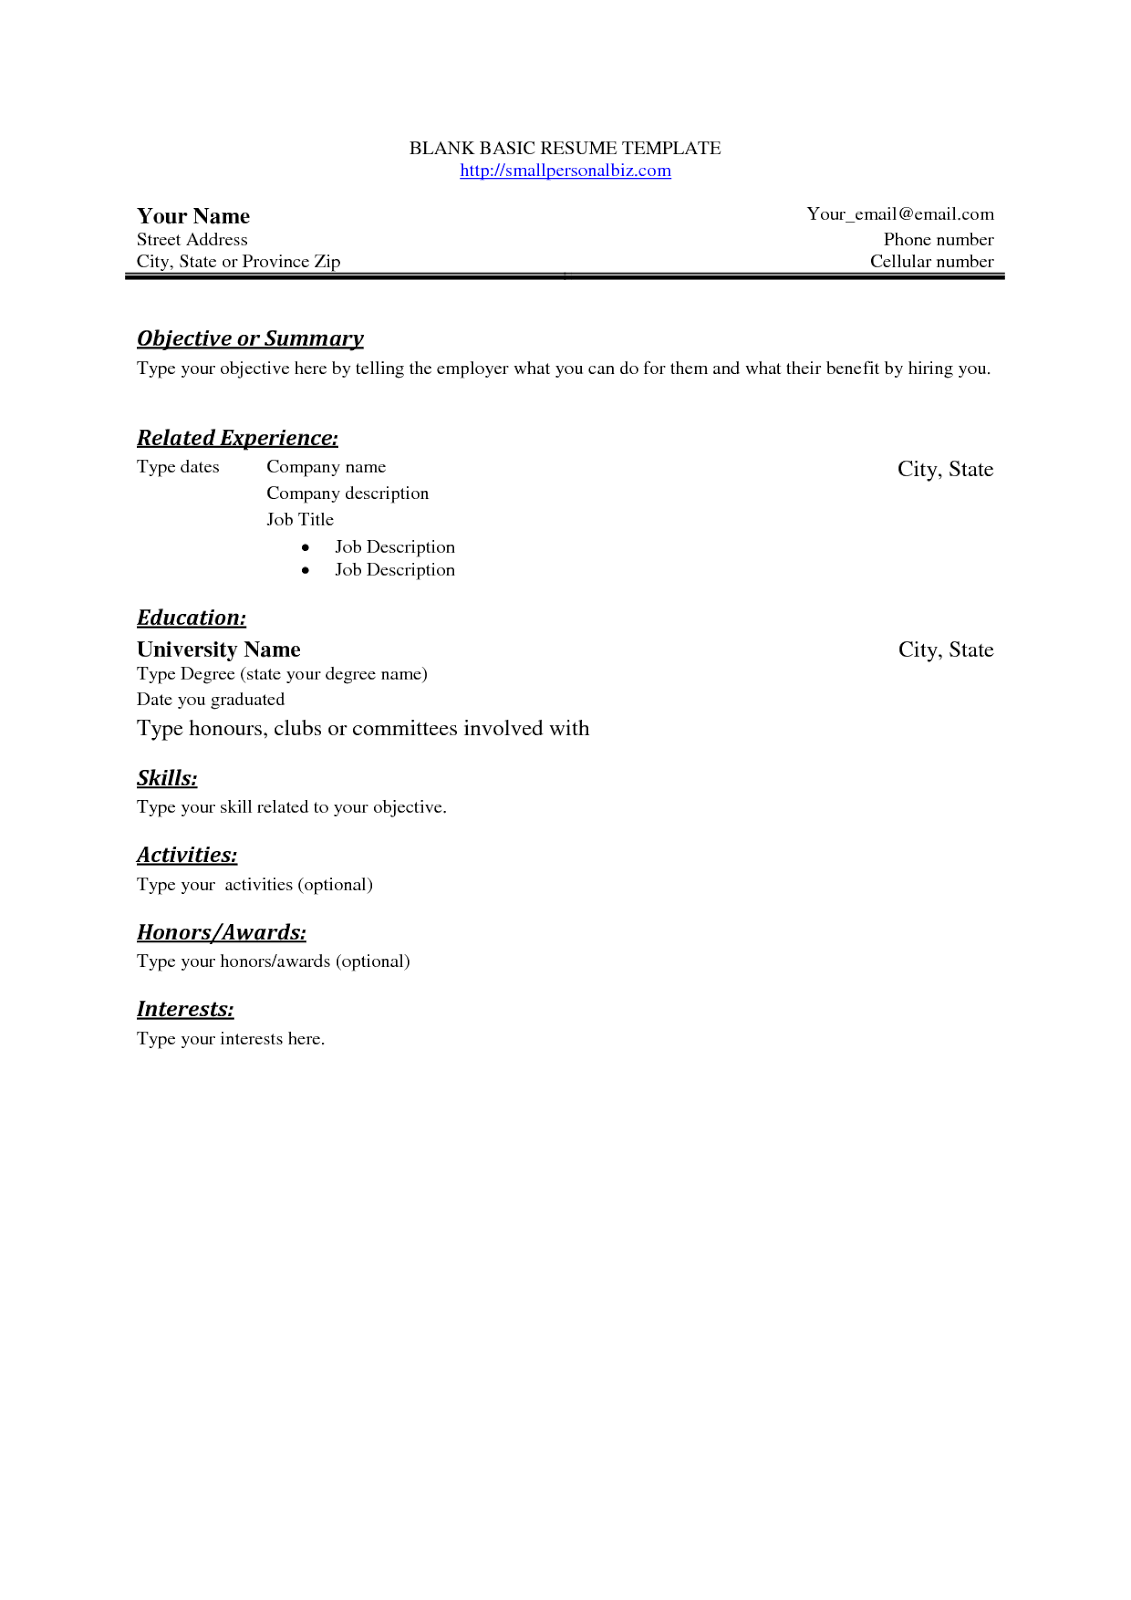 blank resume photo empty resume format blank cv sample pdf pdf resume template empty resume format blank cv sample pdf pdf resume template